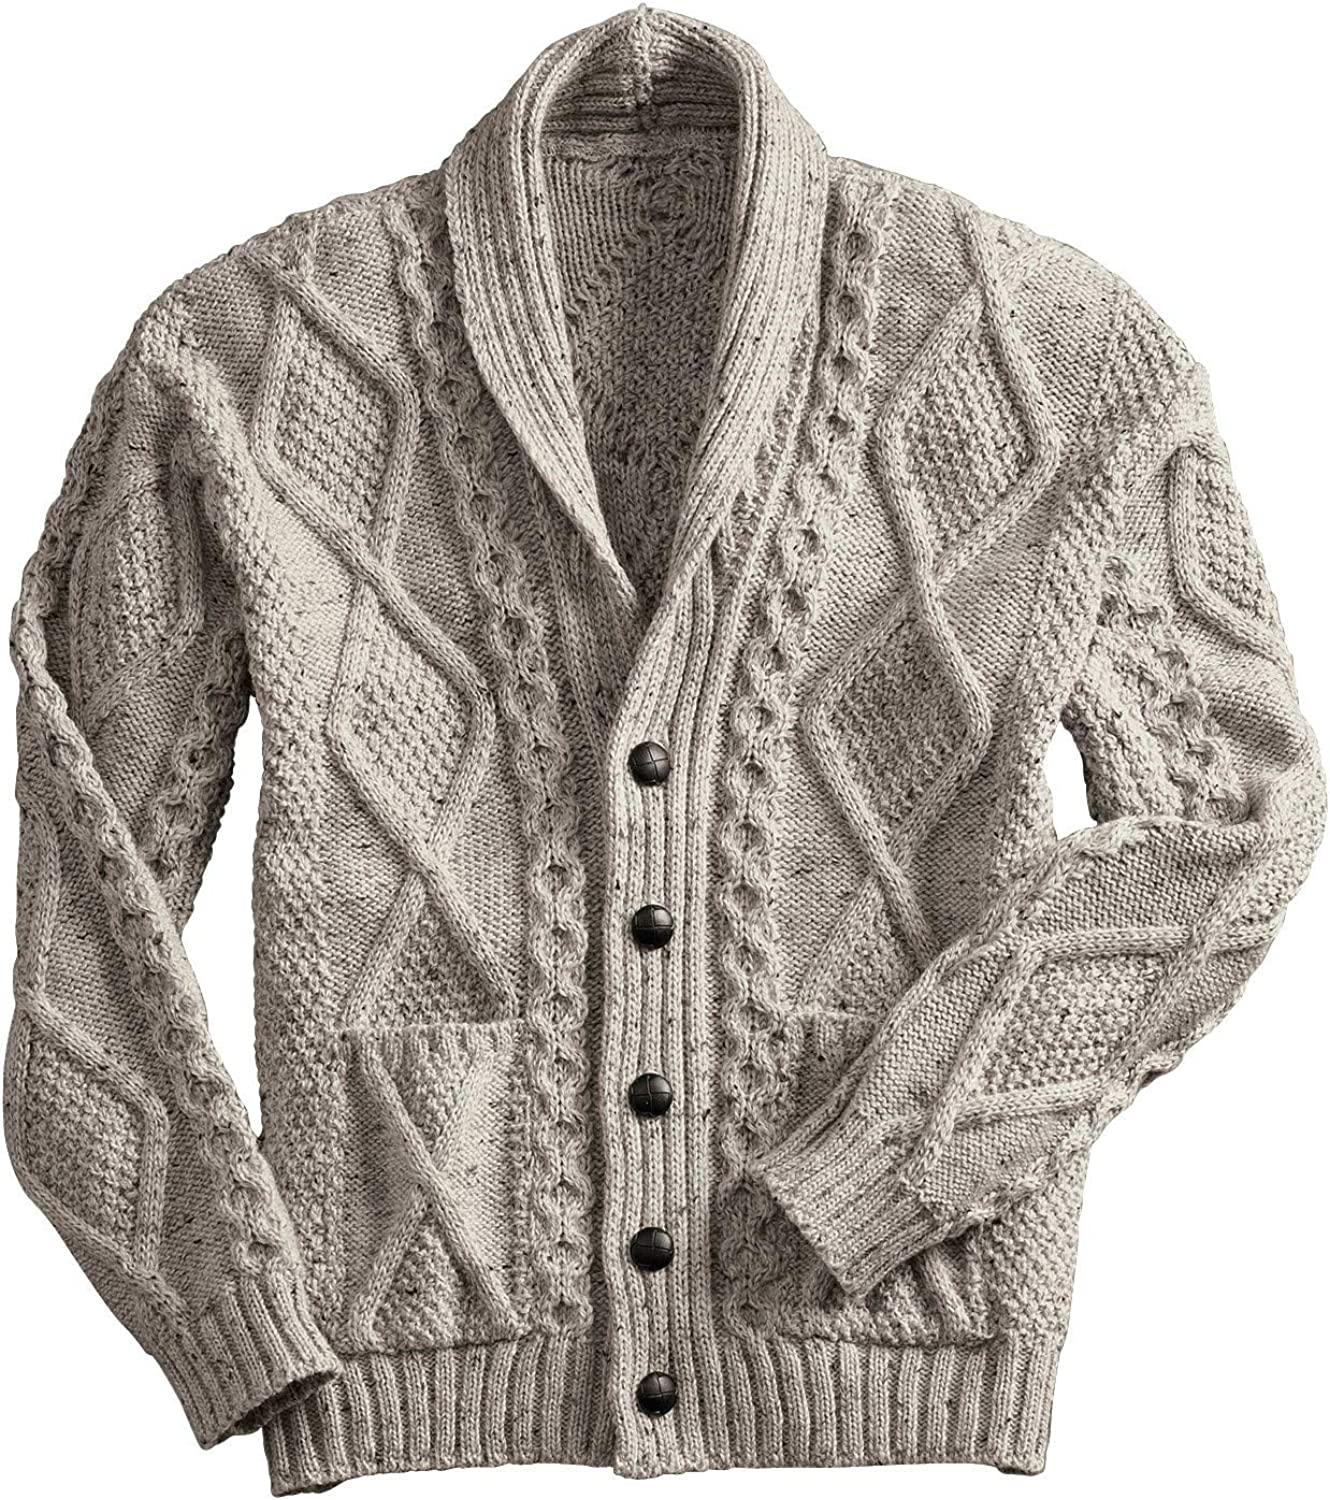 wool or 100/% cashmere achievable in 24 colors. Mens/' sweater pull knitting pattern with patches and contrasting color cuffs pullover